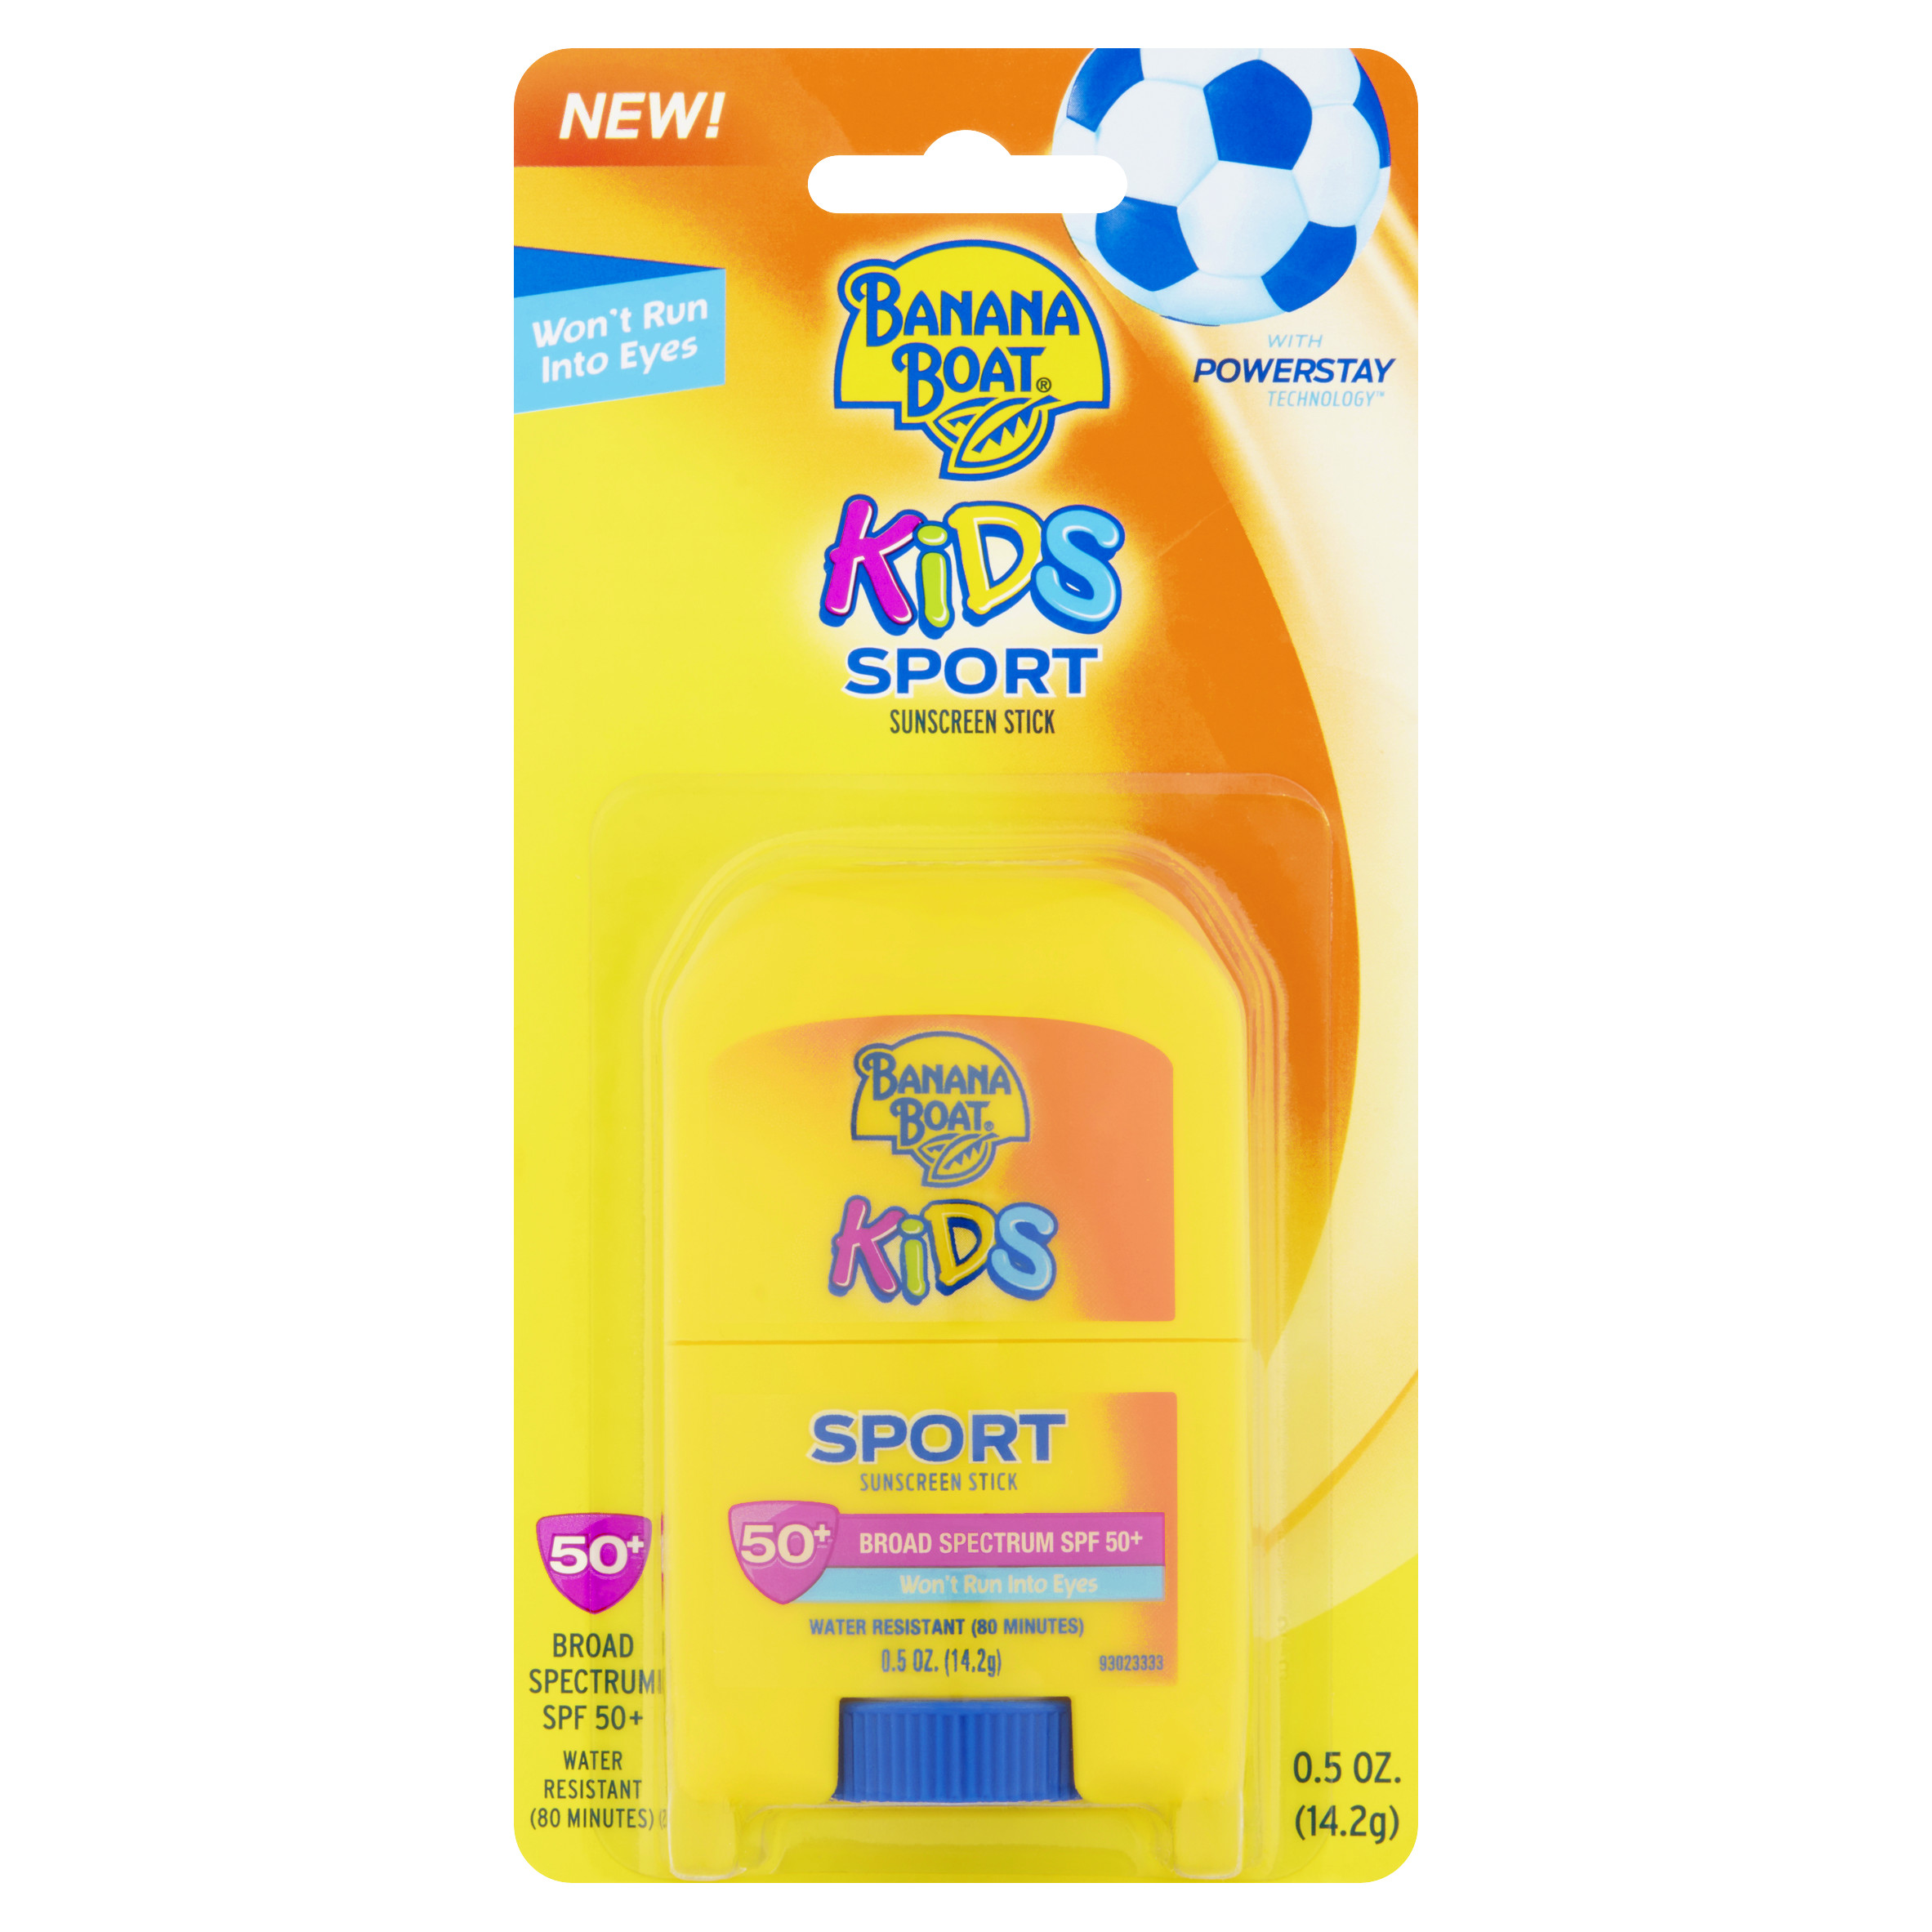 Banana Boat Kids Sport Broad Spectrum Sunscreen Stick SPF 50+ 0.5 oz